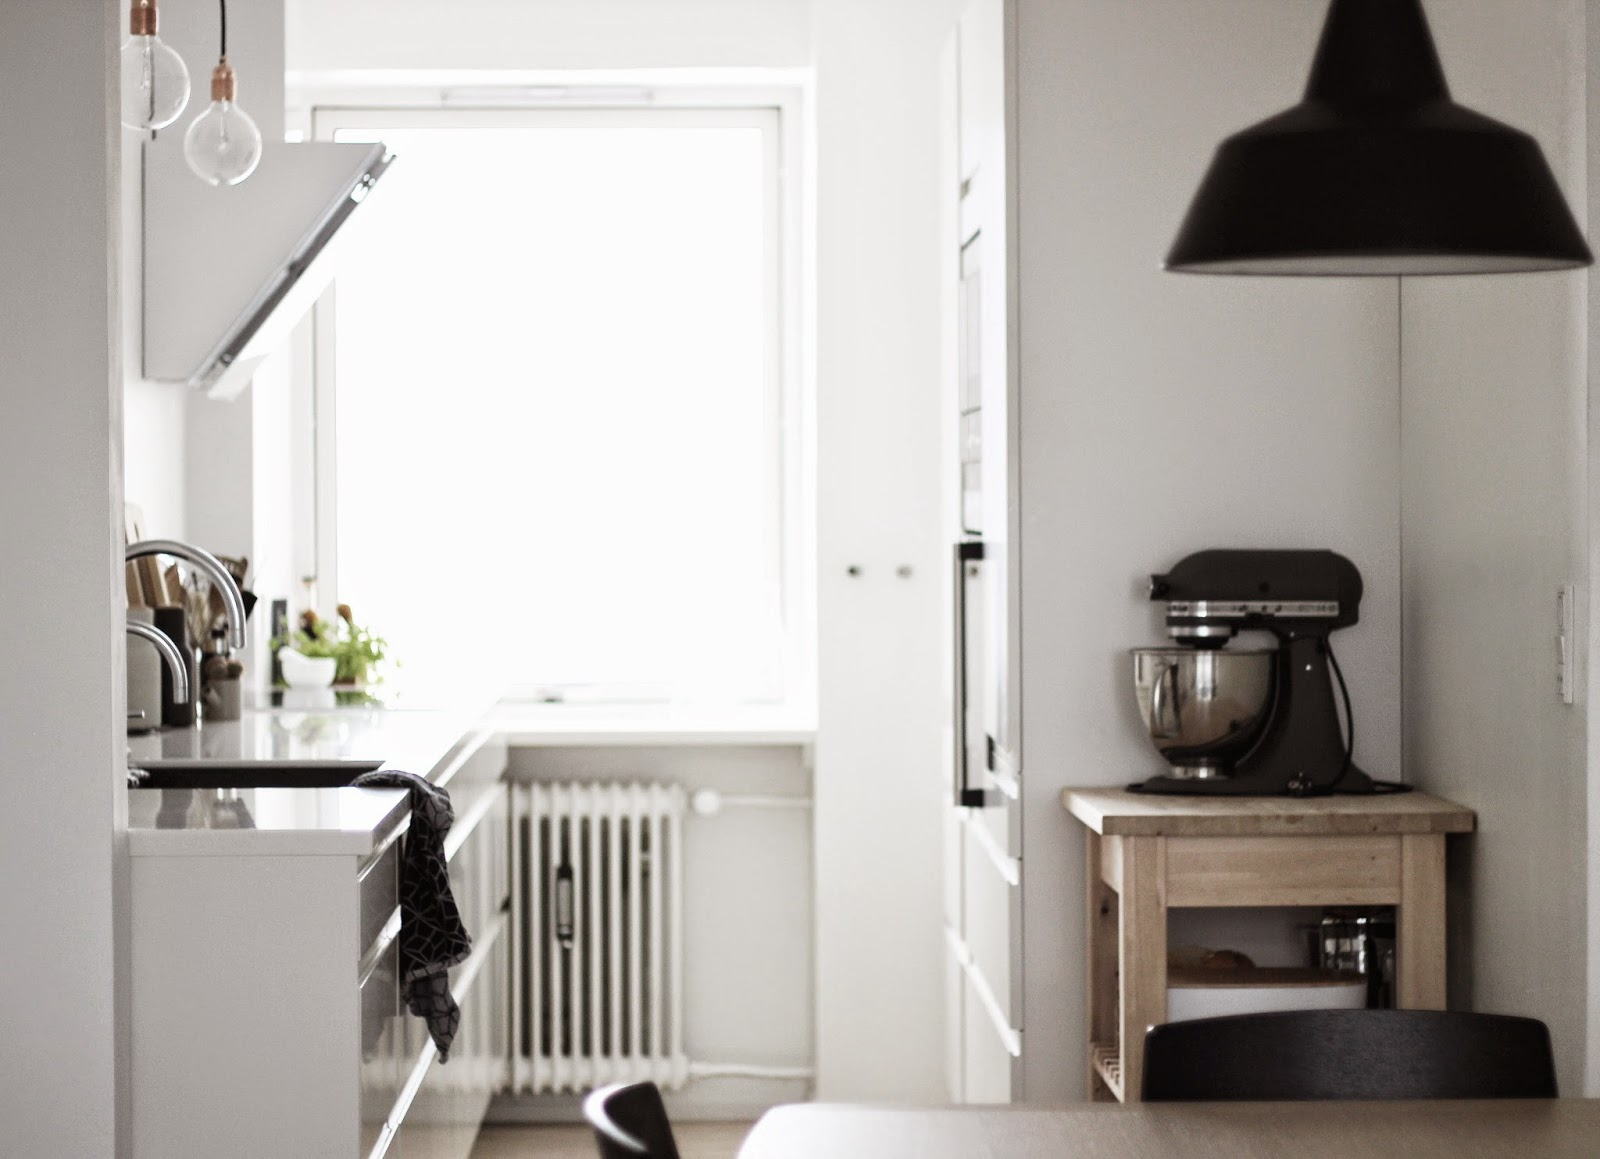 kitchen makeover, kitchen before and after pictures, kitchen renovation, diy, scandinavian interior, white kitchen, corian counter top, black sink, via http://www.scandinavianlovesong.com/